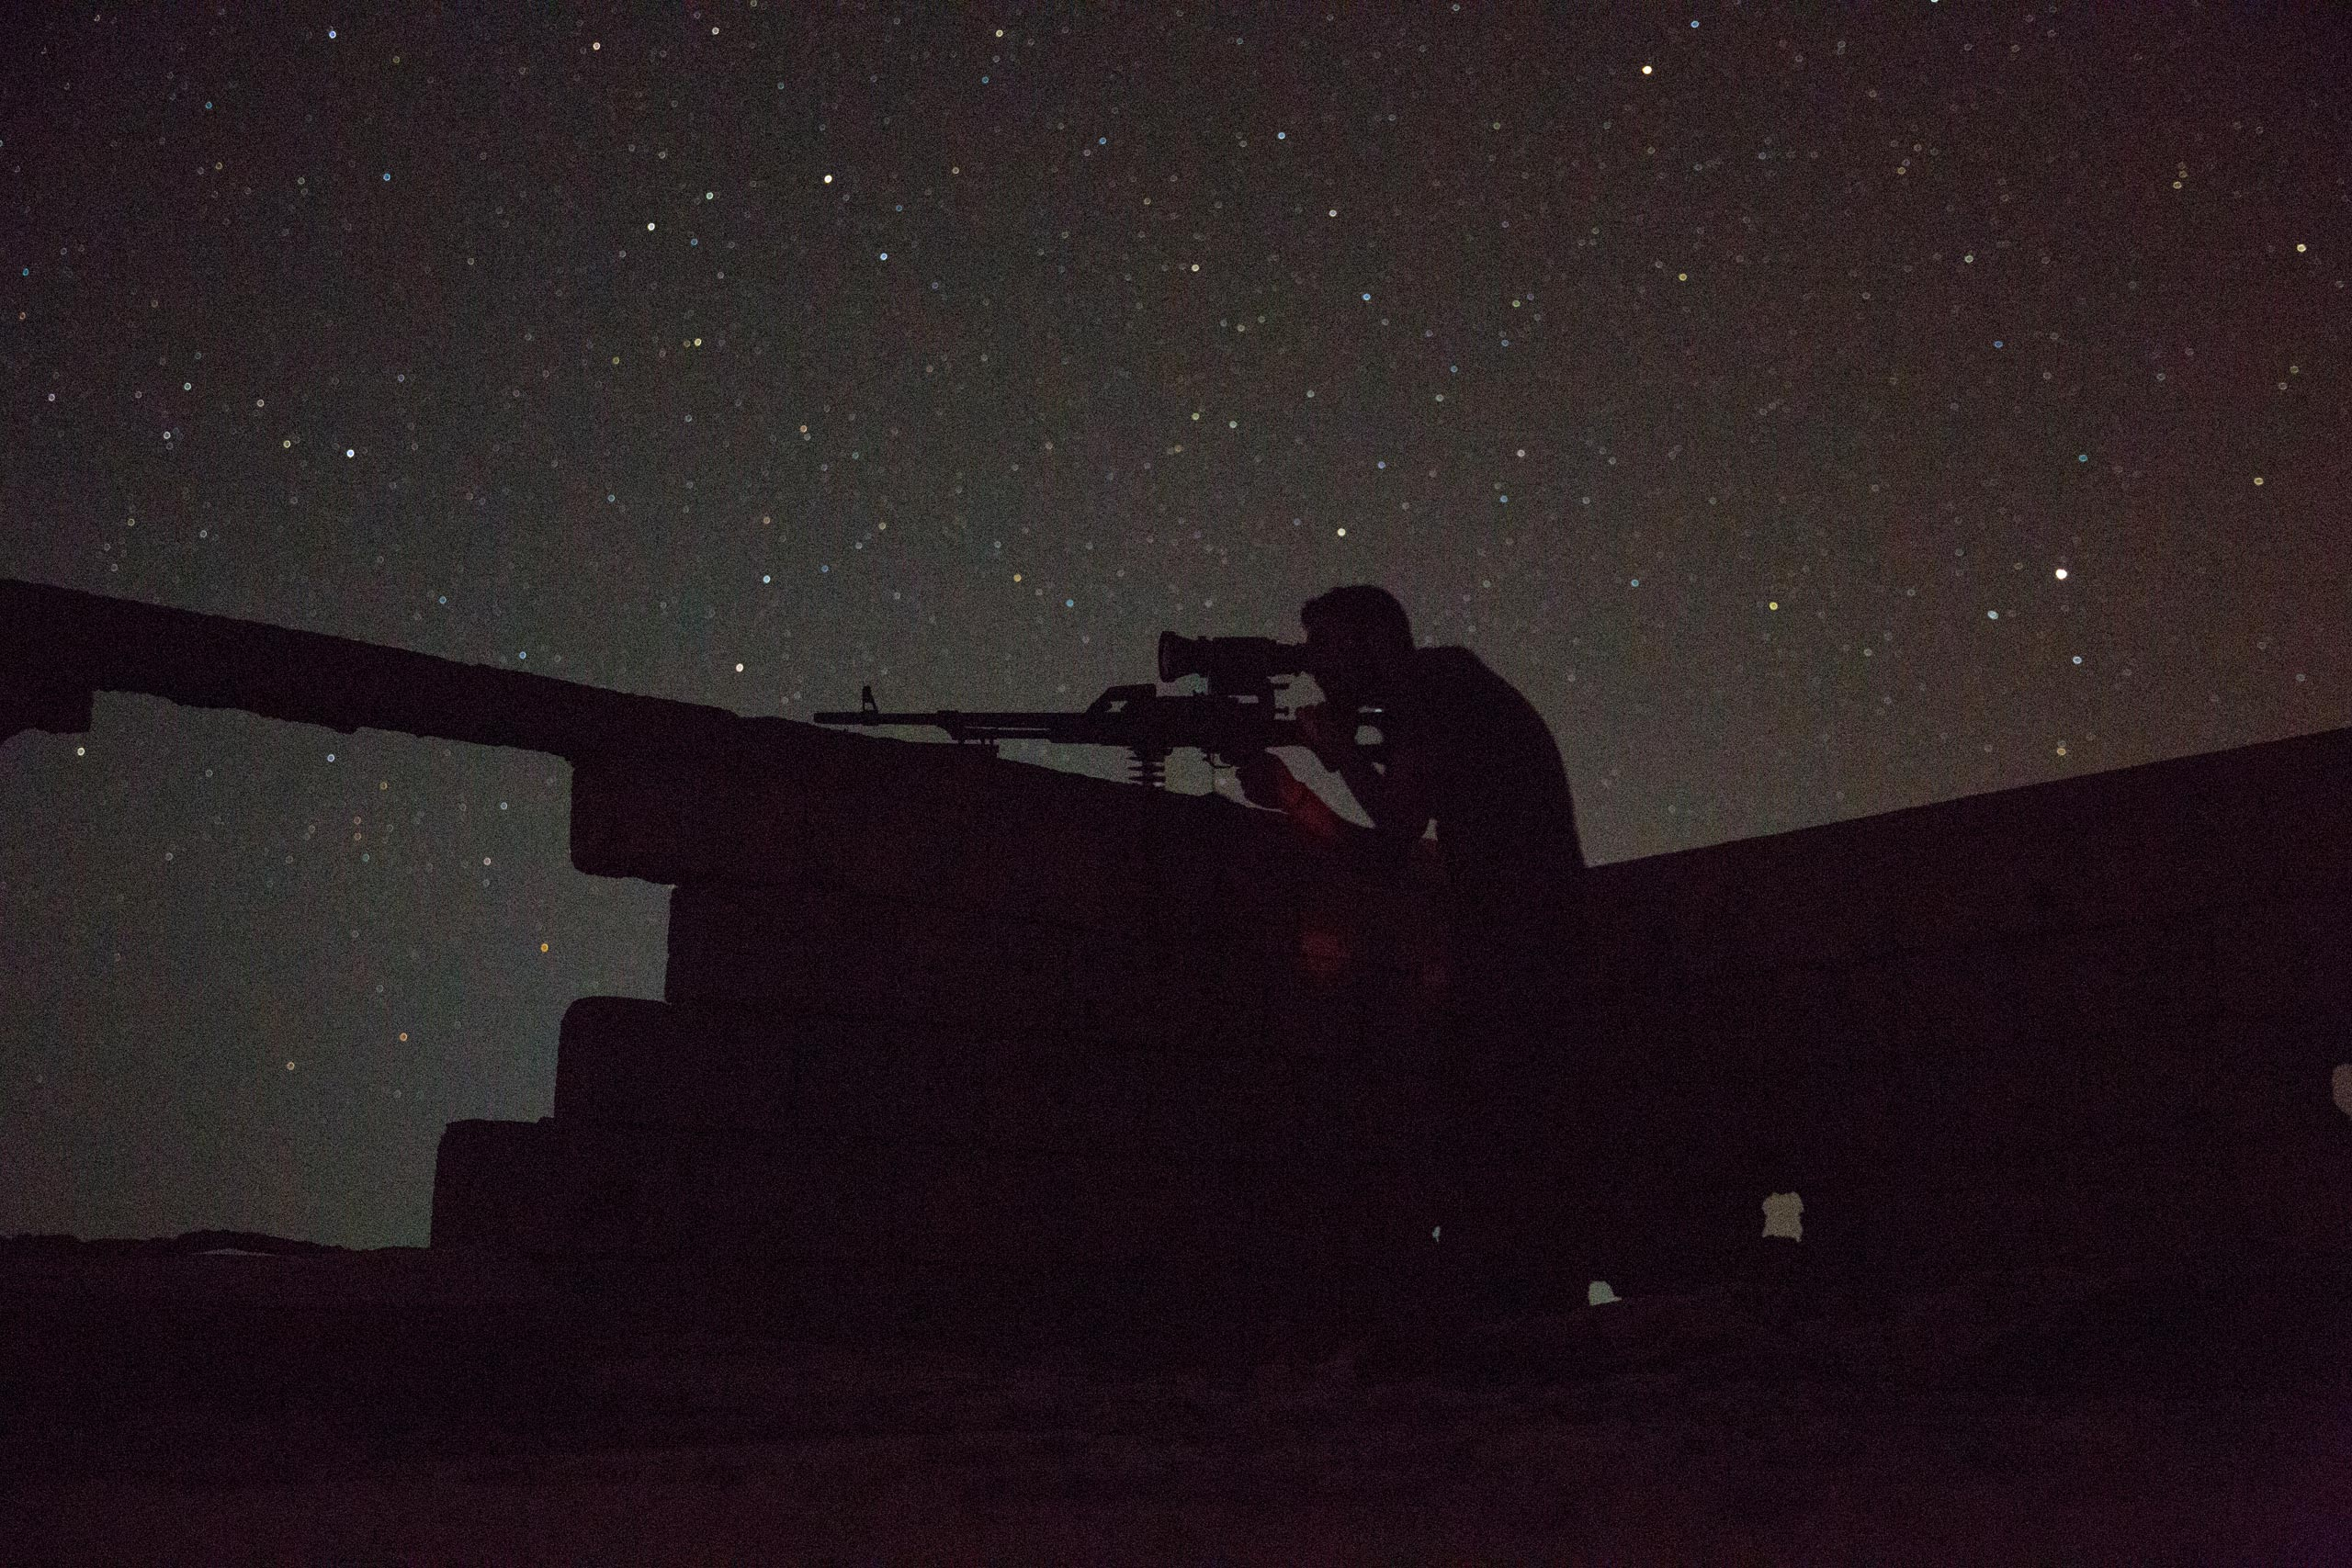 Jibril, a Christian fighter with the Syrian government's Directorate of Military Intelligence, surveys known ISIS positions using a night vision scope mounted on a Russian squad assault weapon, May 20, 2015.